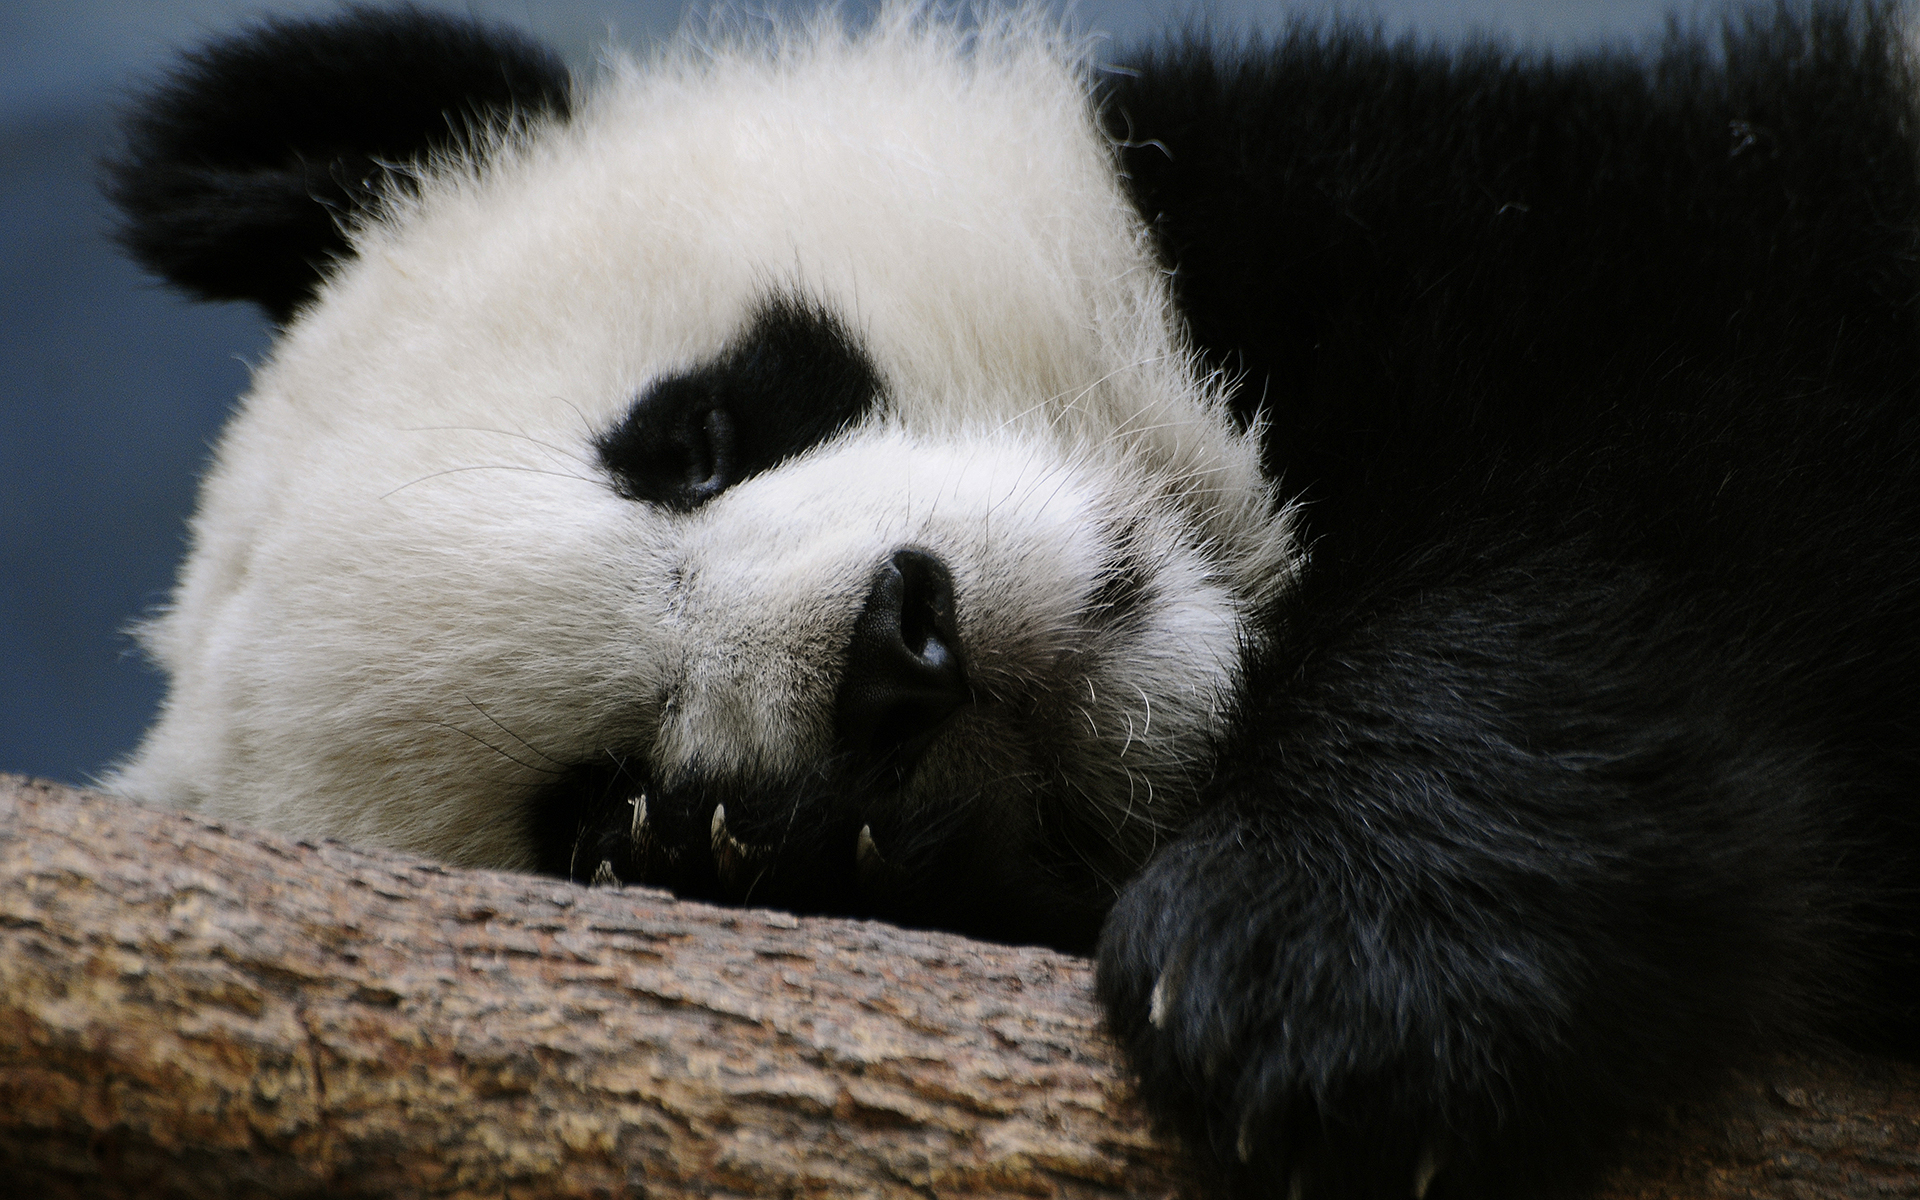 Cute little panda sleeping